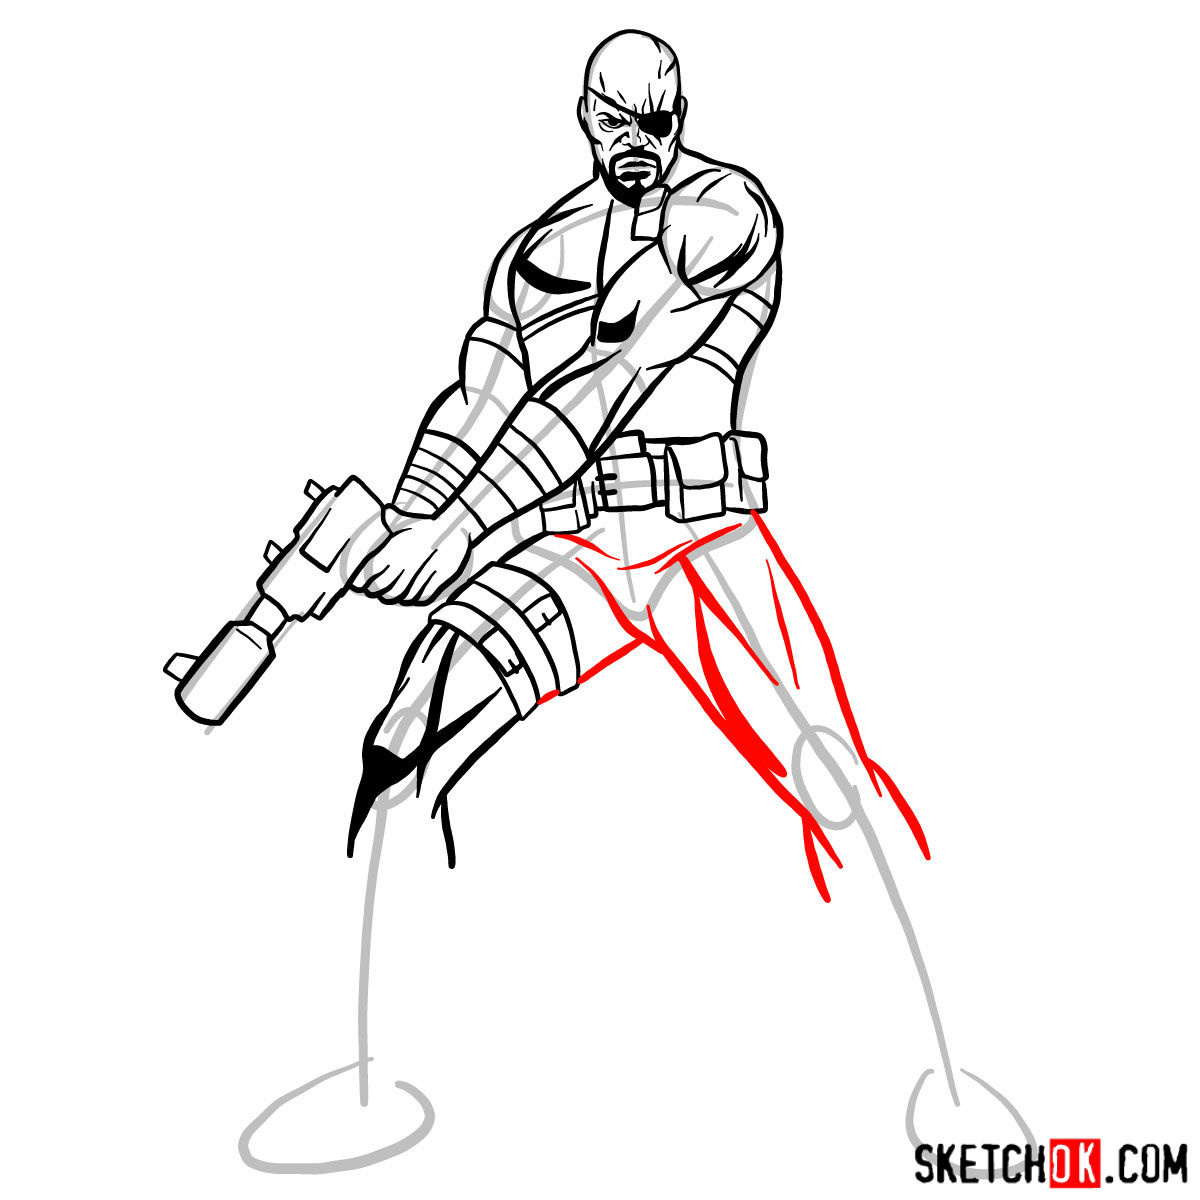 How to draw Nick Fury from the Avengers - step 12